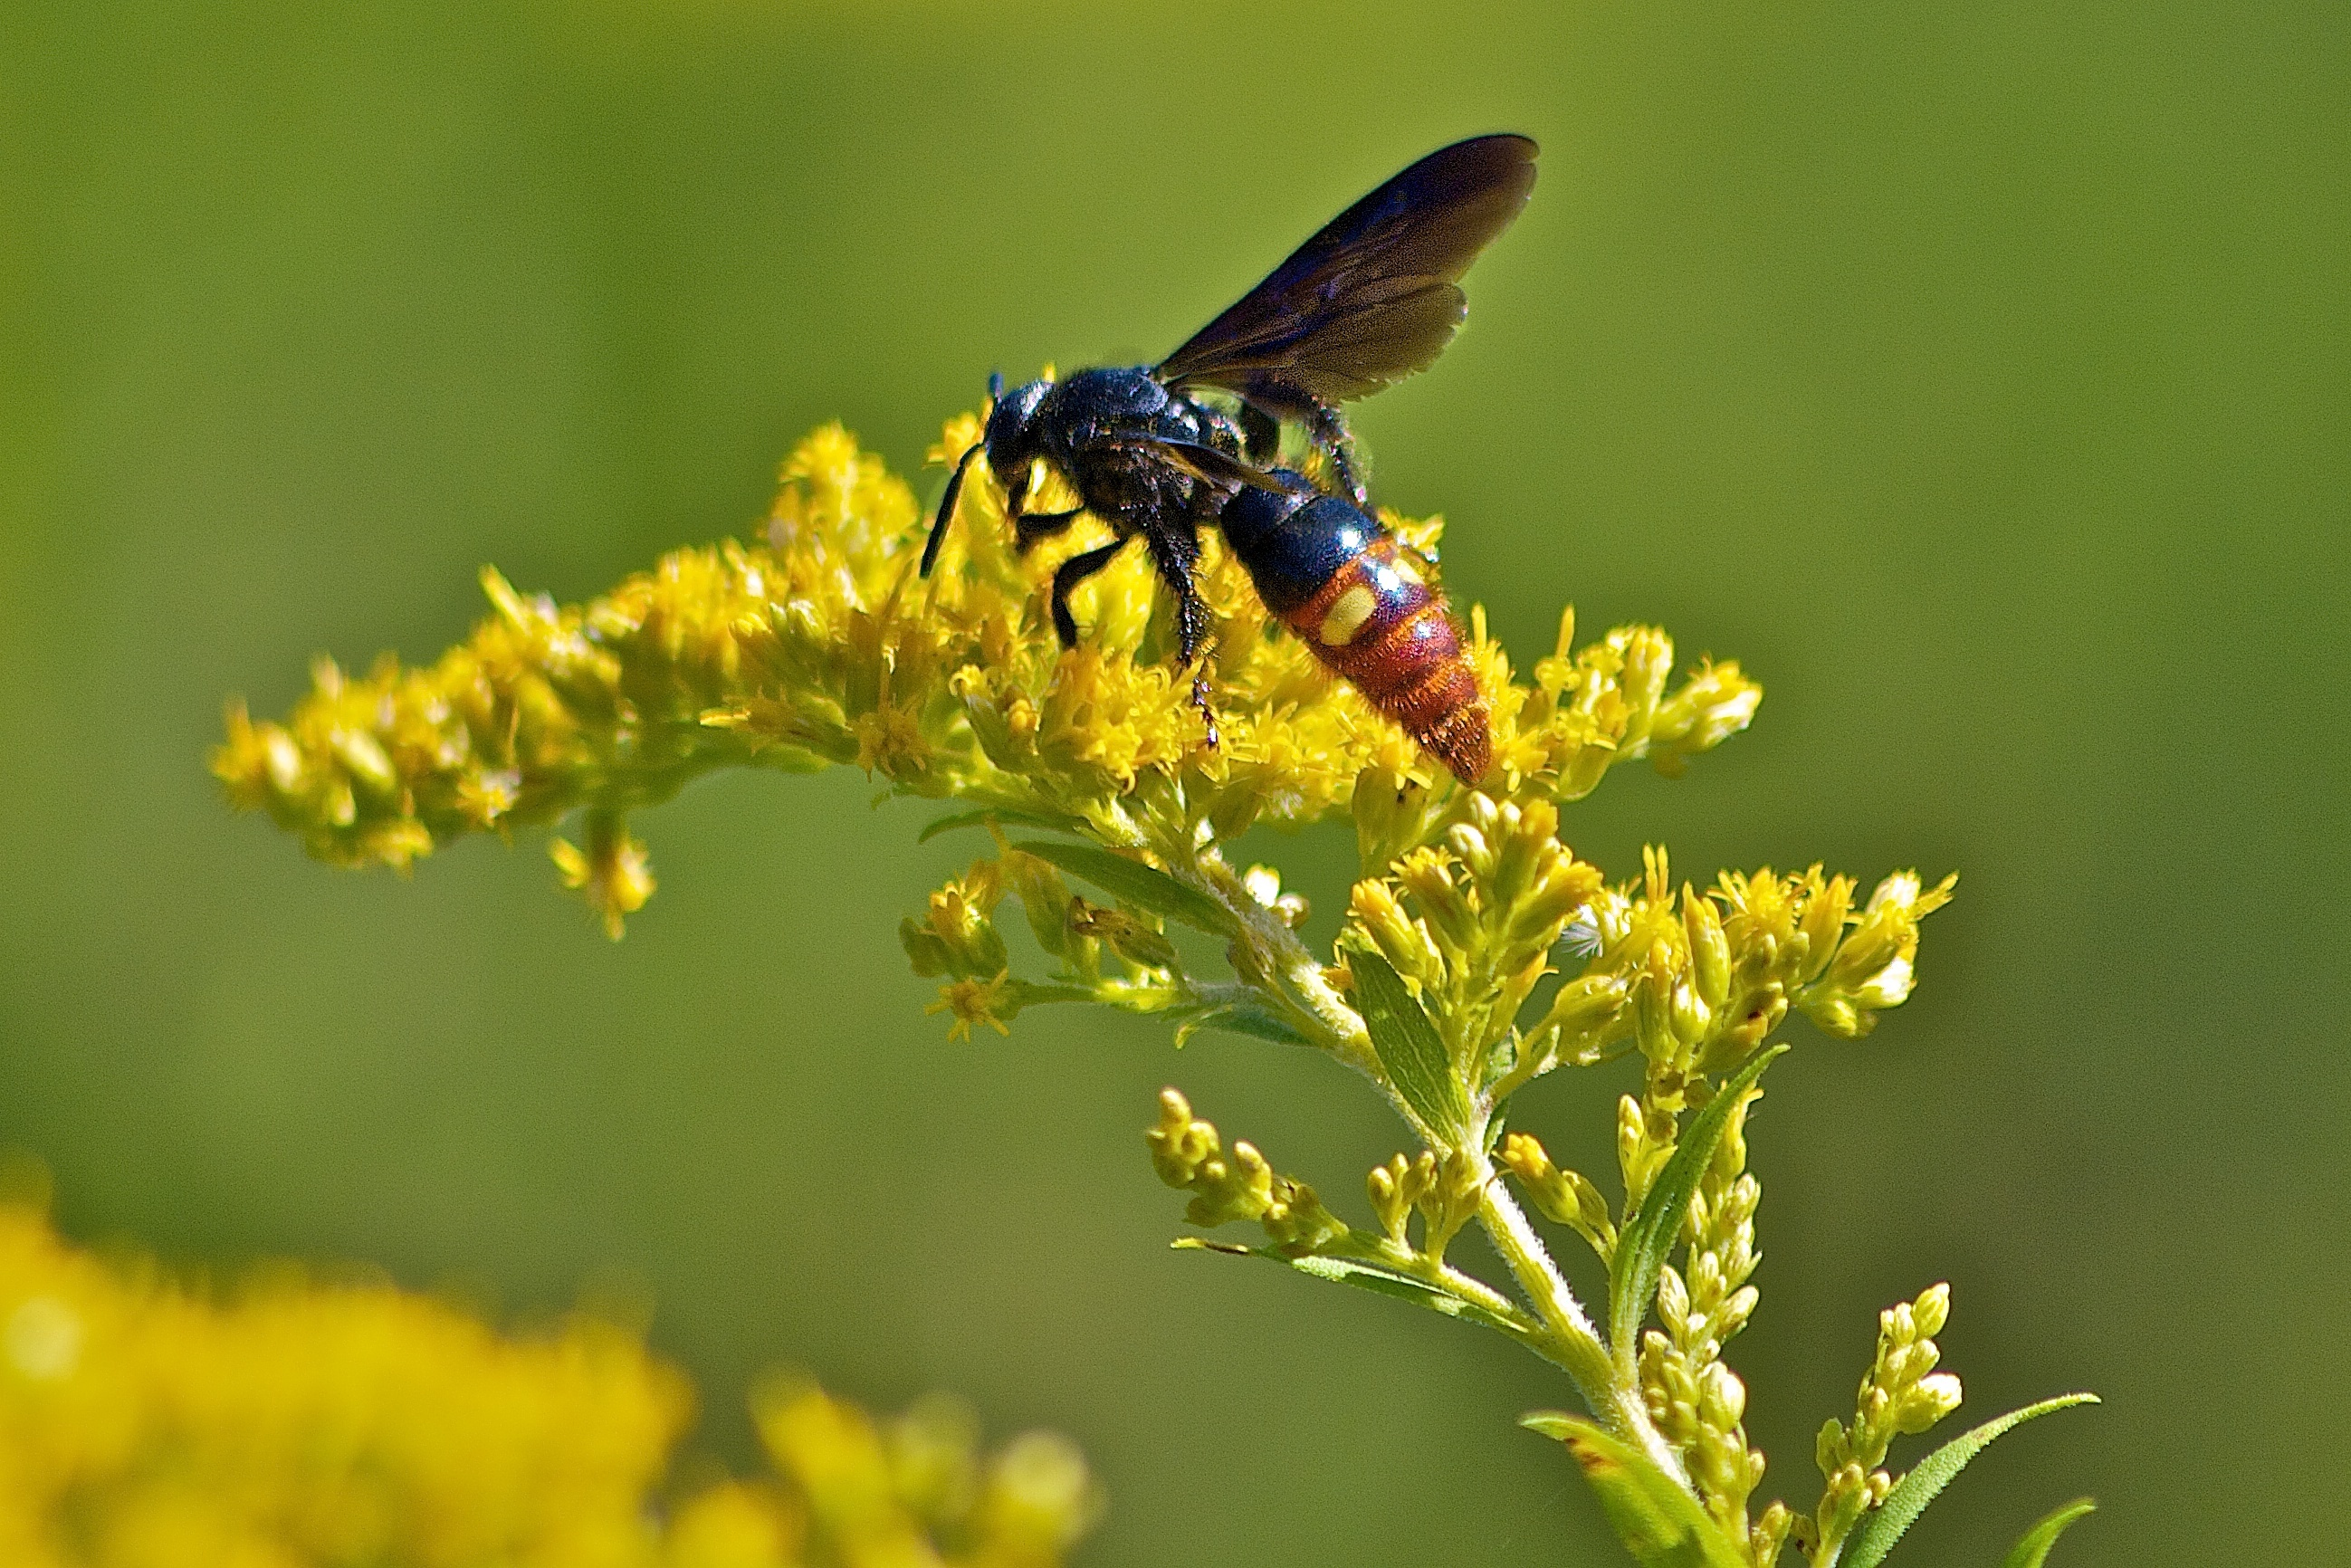 Image of Blue-winged Wasp